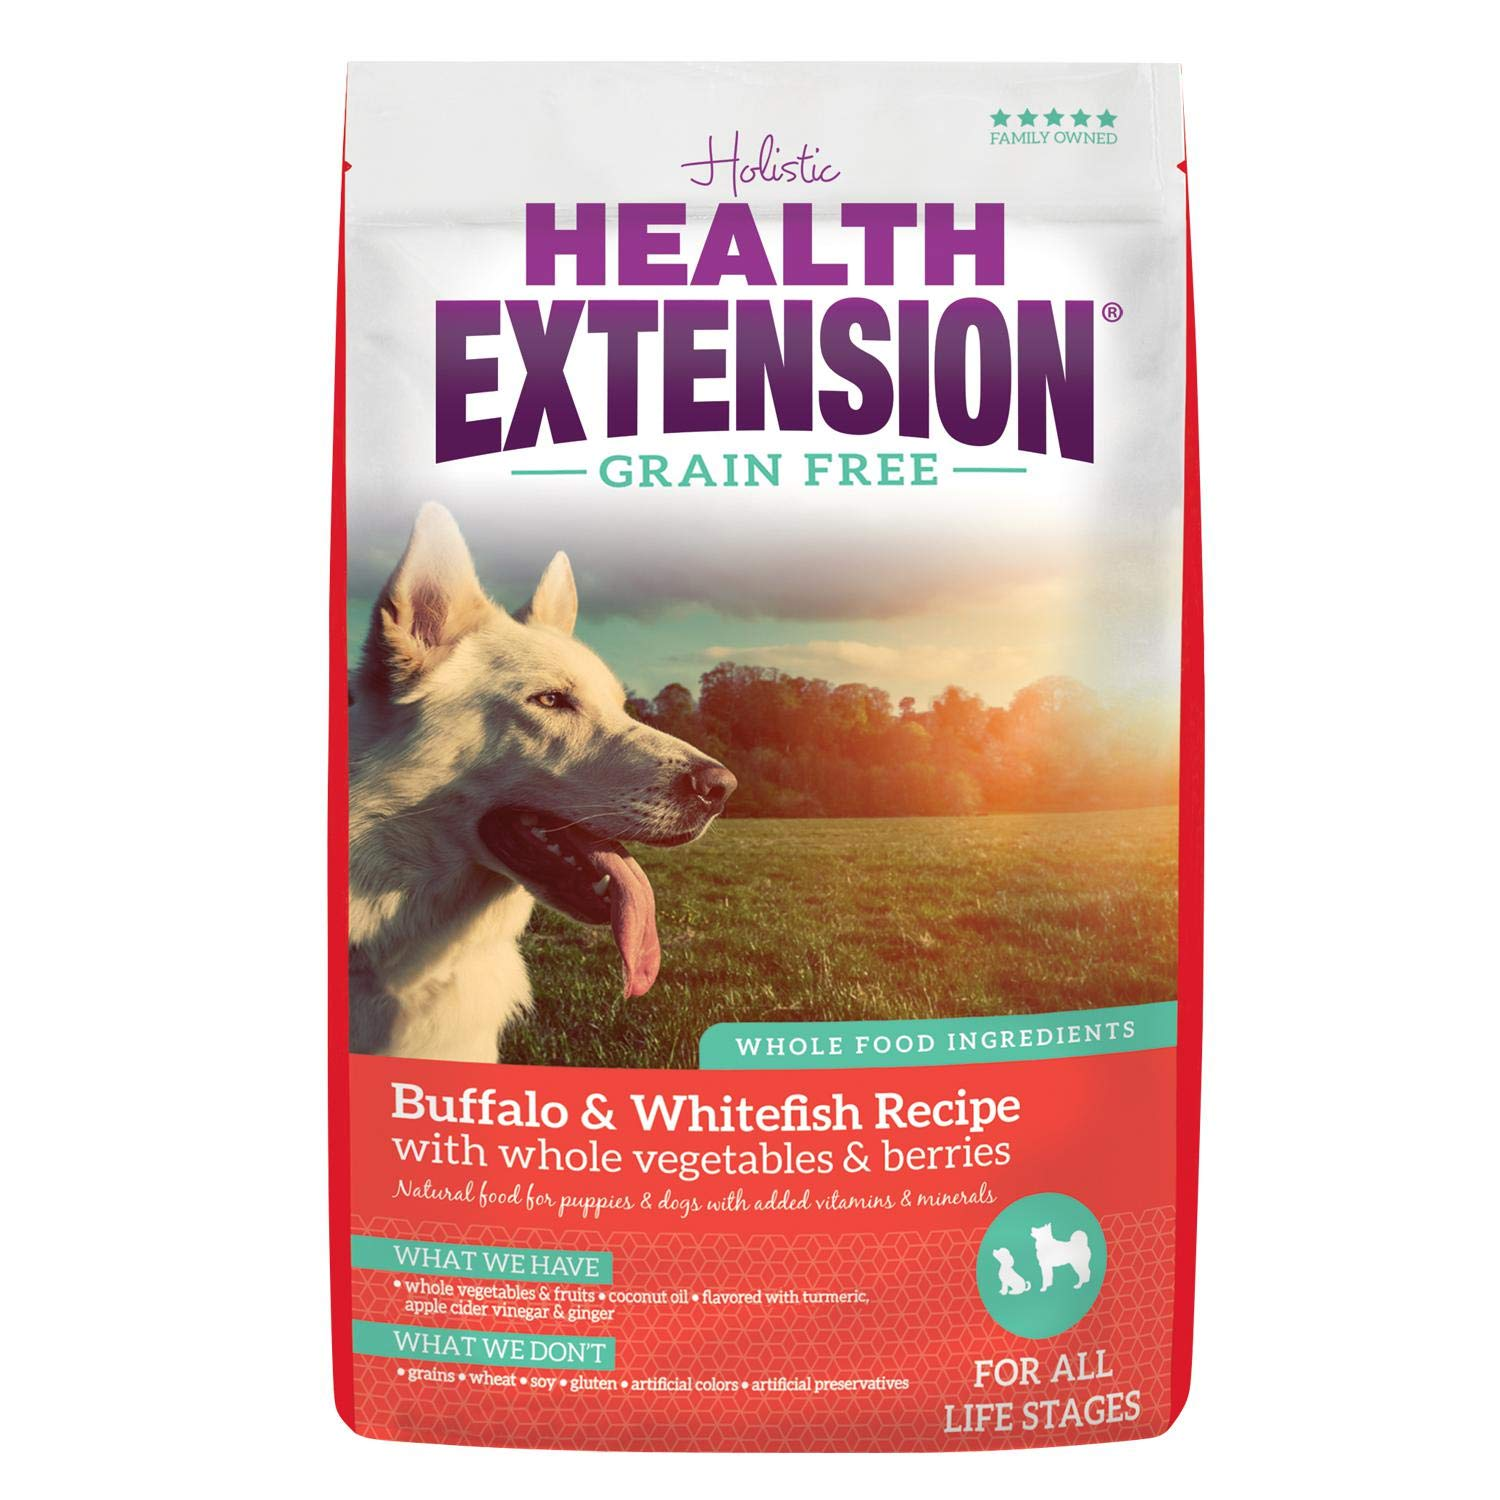 Health Extension Grain Free Dry Dog Food – Buffalo Whitefish Recipe